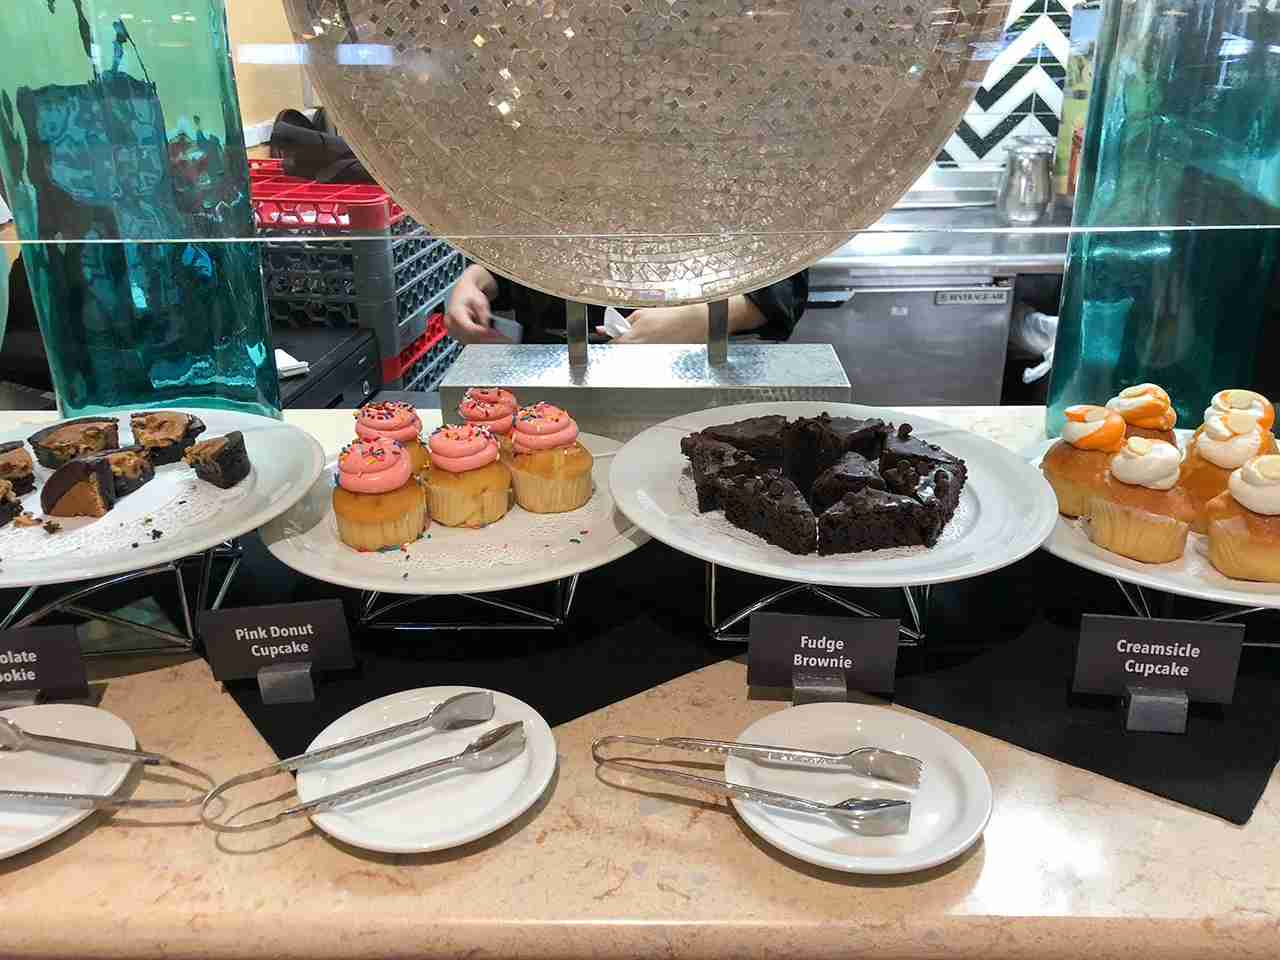 Universal Studios Cafe La Bamba VIP lunch selections